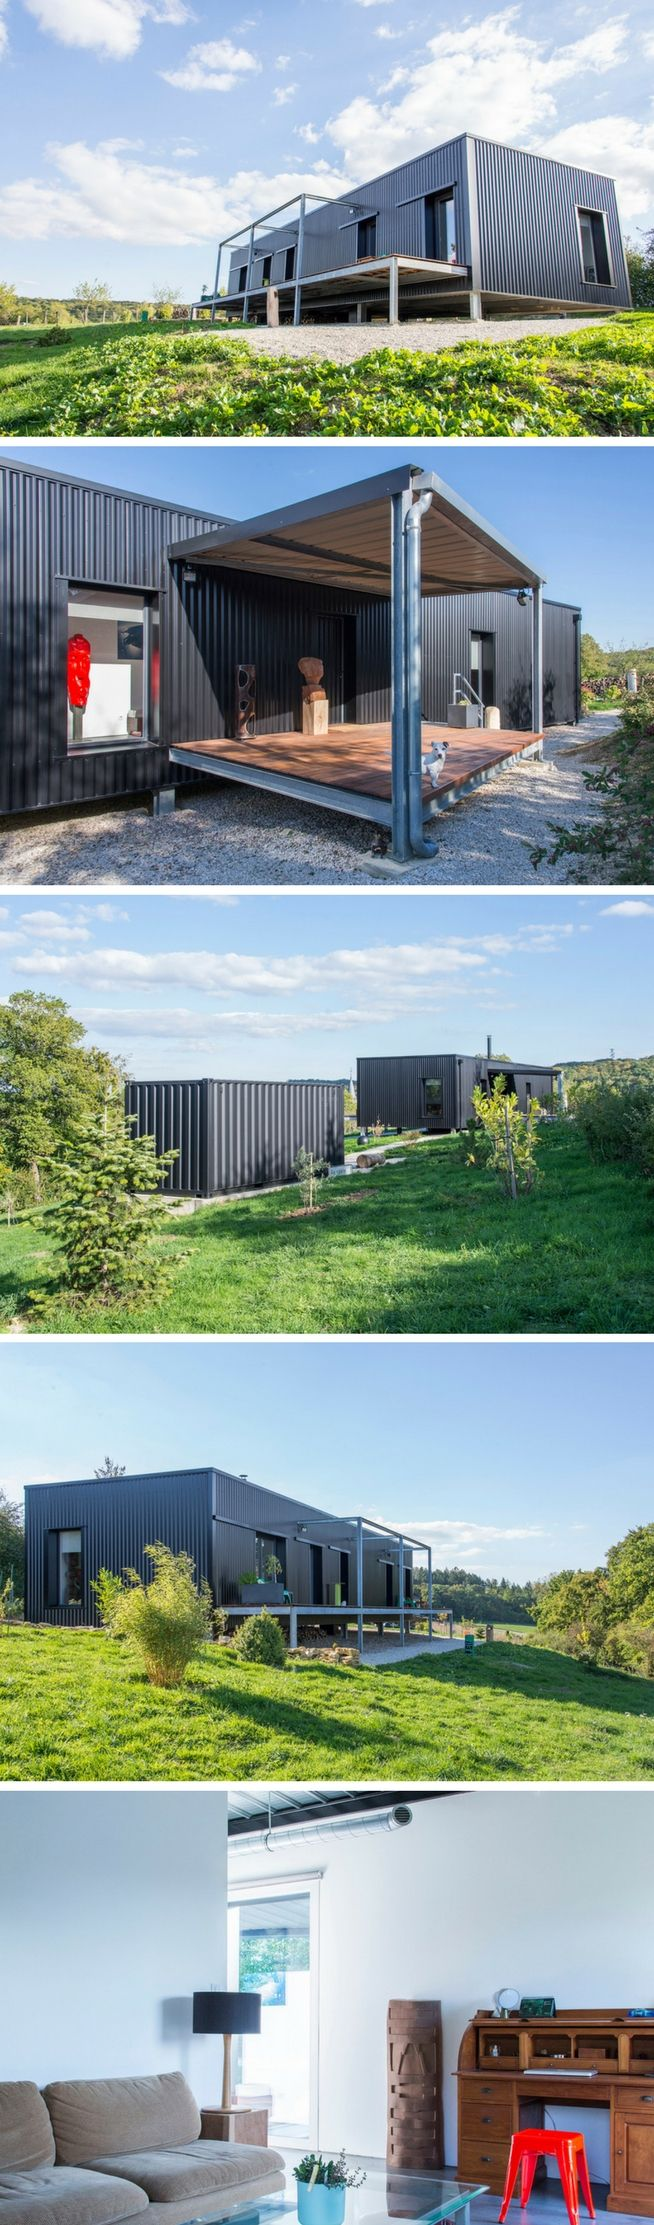 Best 25 conex box ideas on pinterest - Bob vila shipping container homes ...